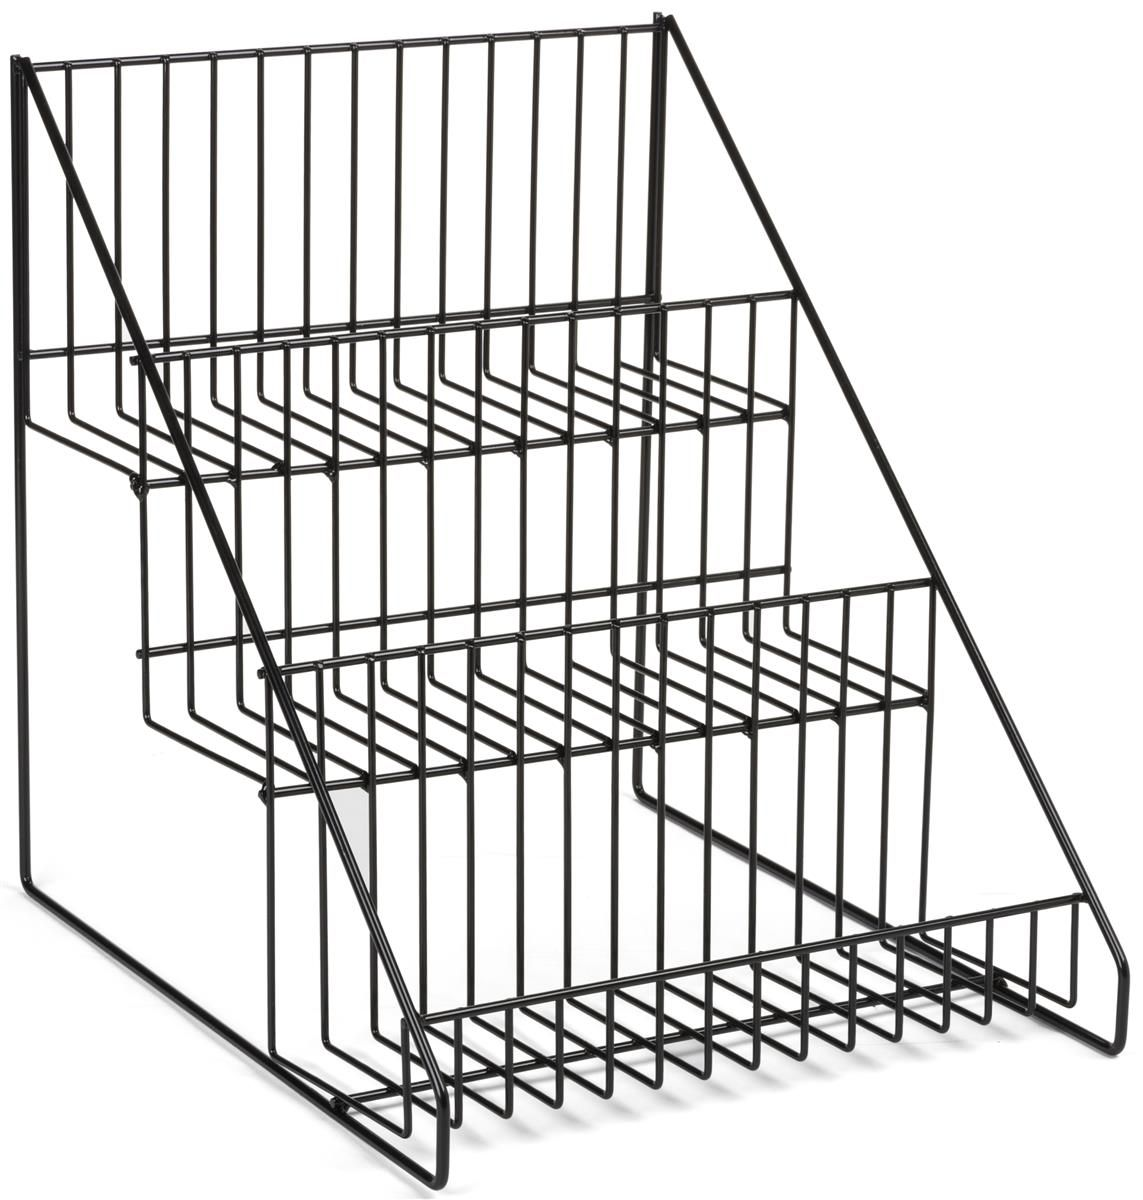 3 Tiered Wire Rack Display Tabletop 12 W Open Shelves Black Scrapbook Storage Table Top Craft Show Displays